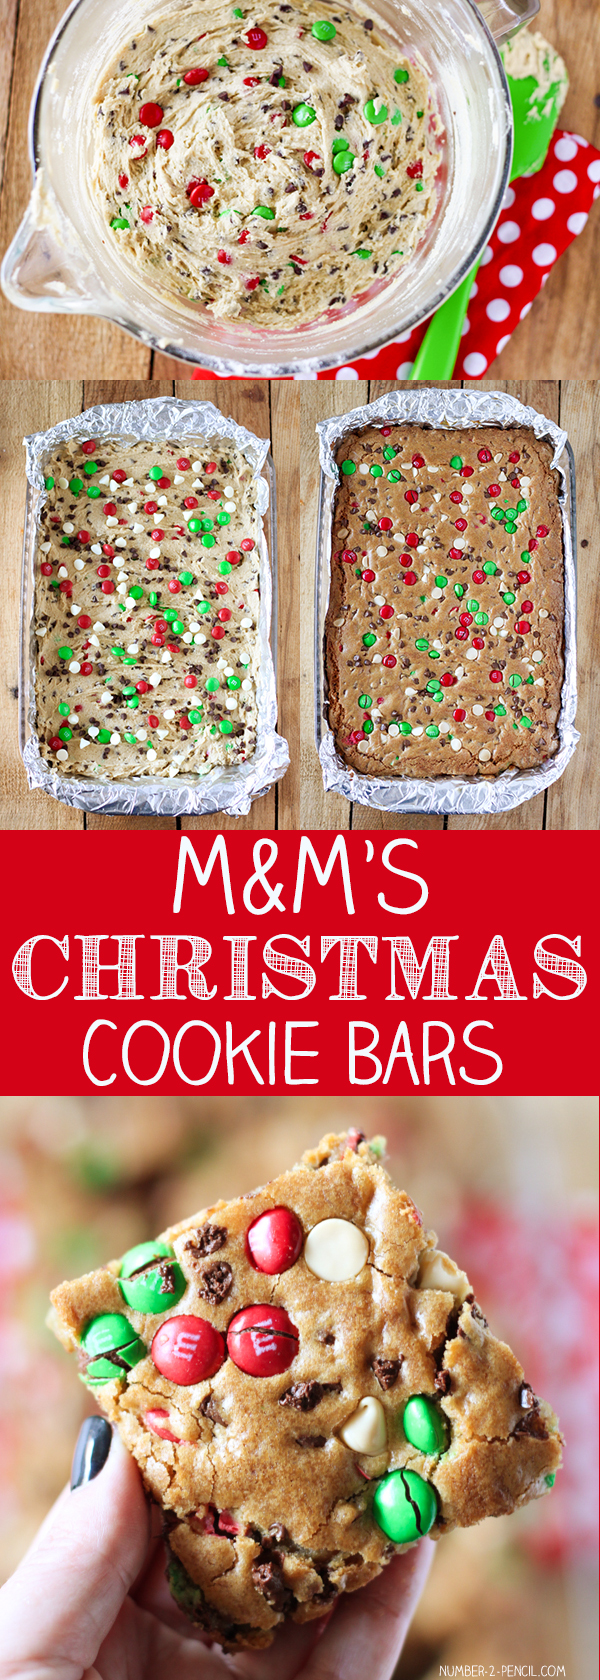 M&M'S Christmas Cookie Bars 50 mins to make, makes 18-36